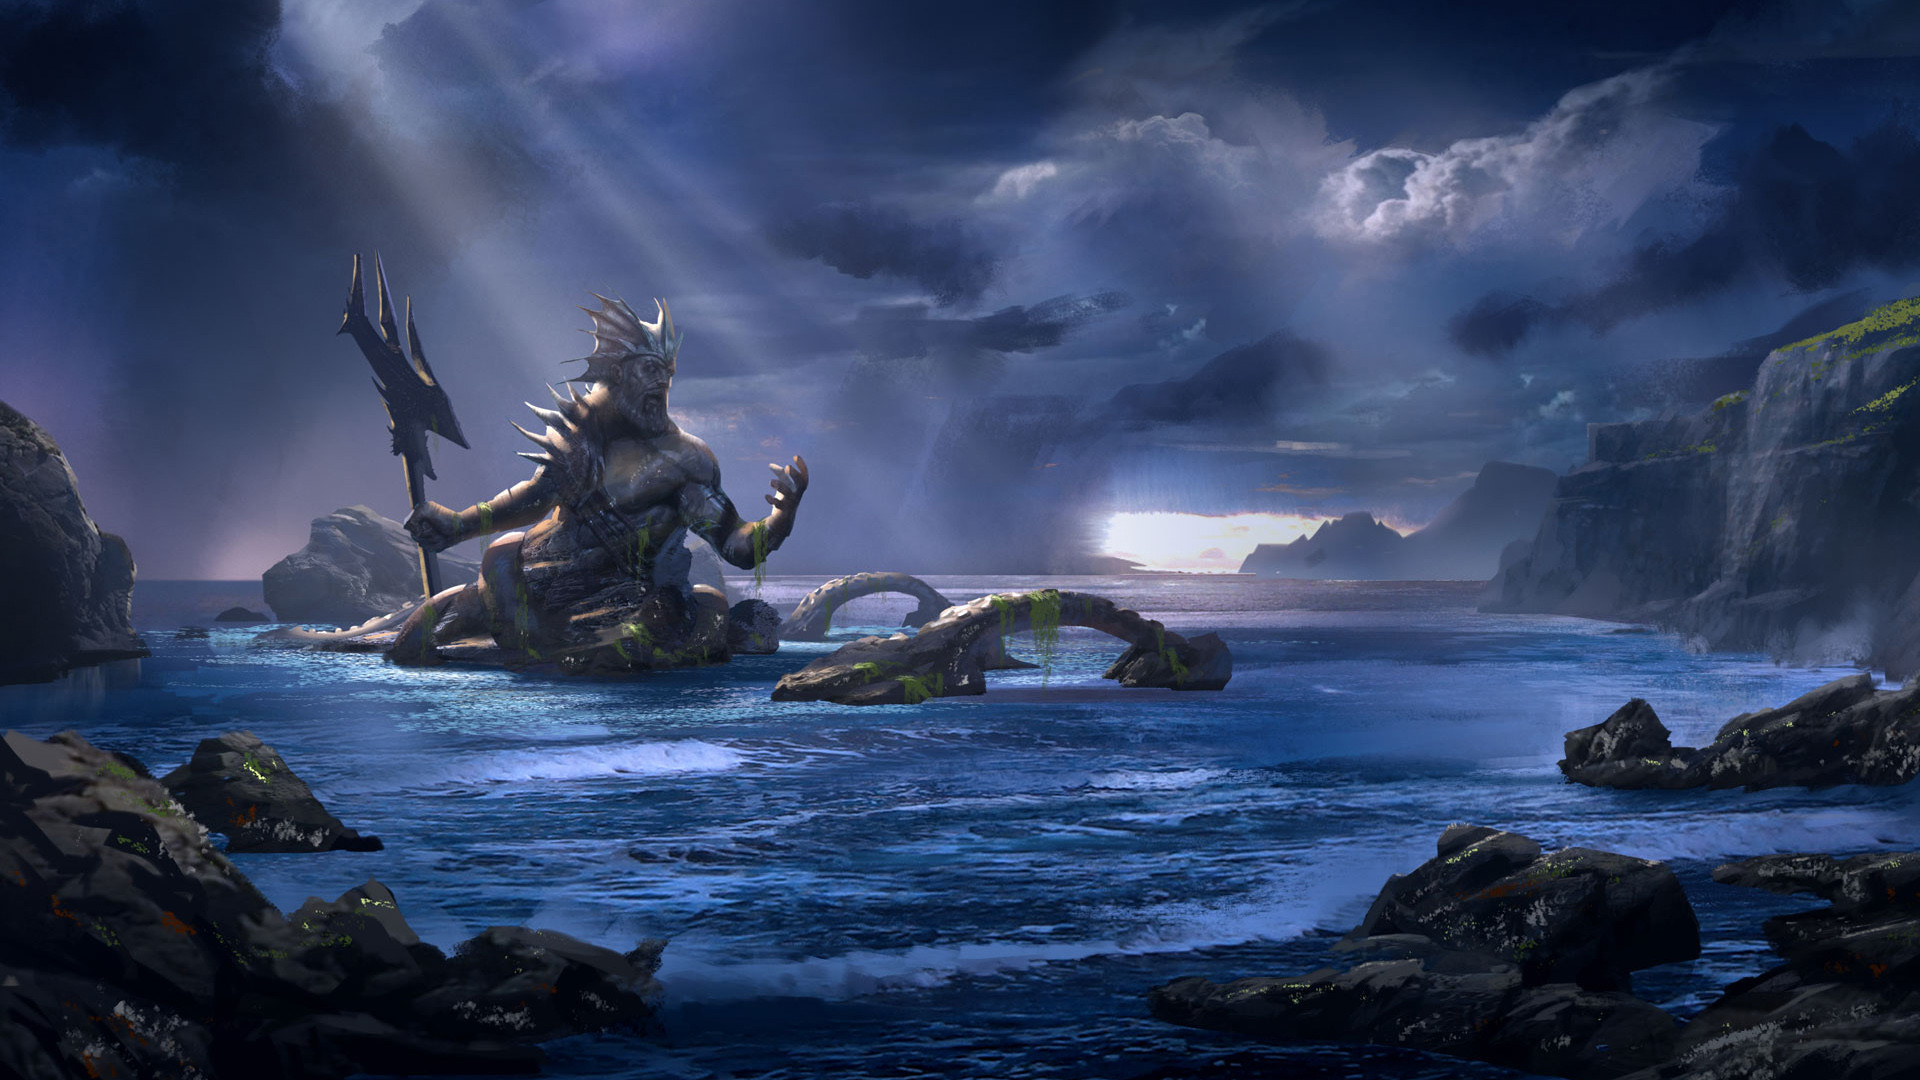 Lord Ganesha Animated Wallpapers Lord Shiva Wallpapers High Resolution 73 Images